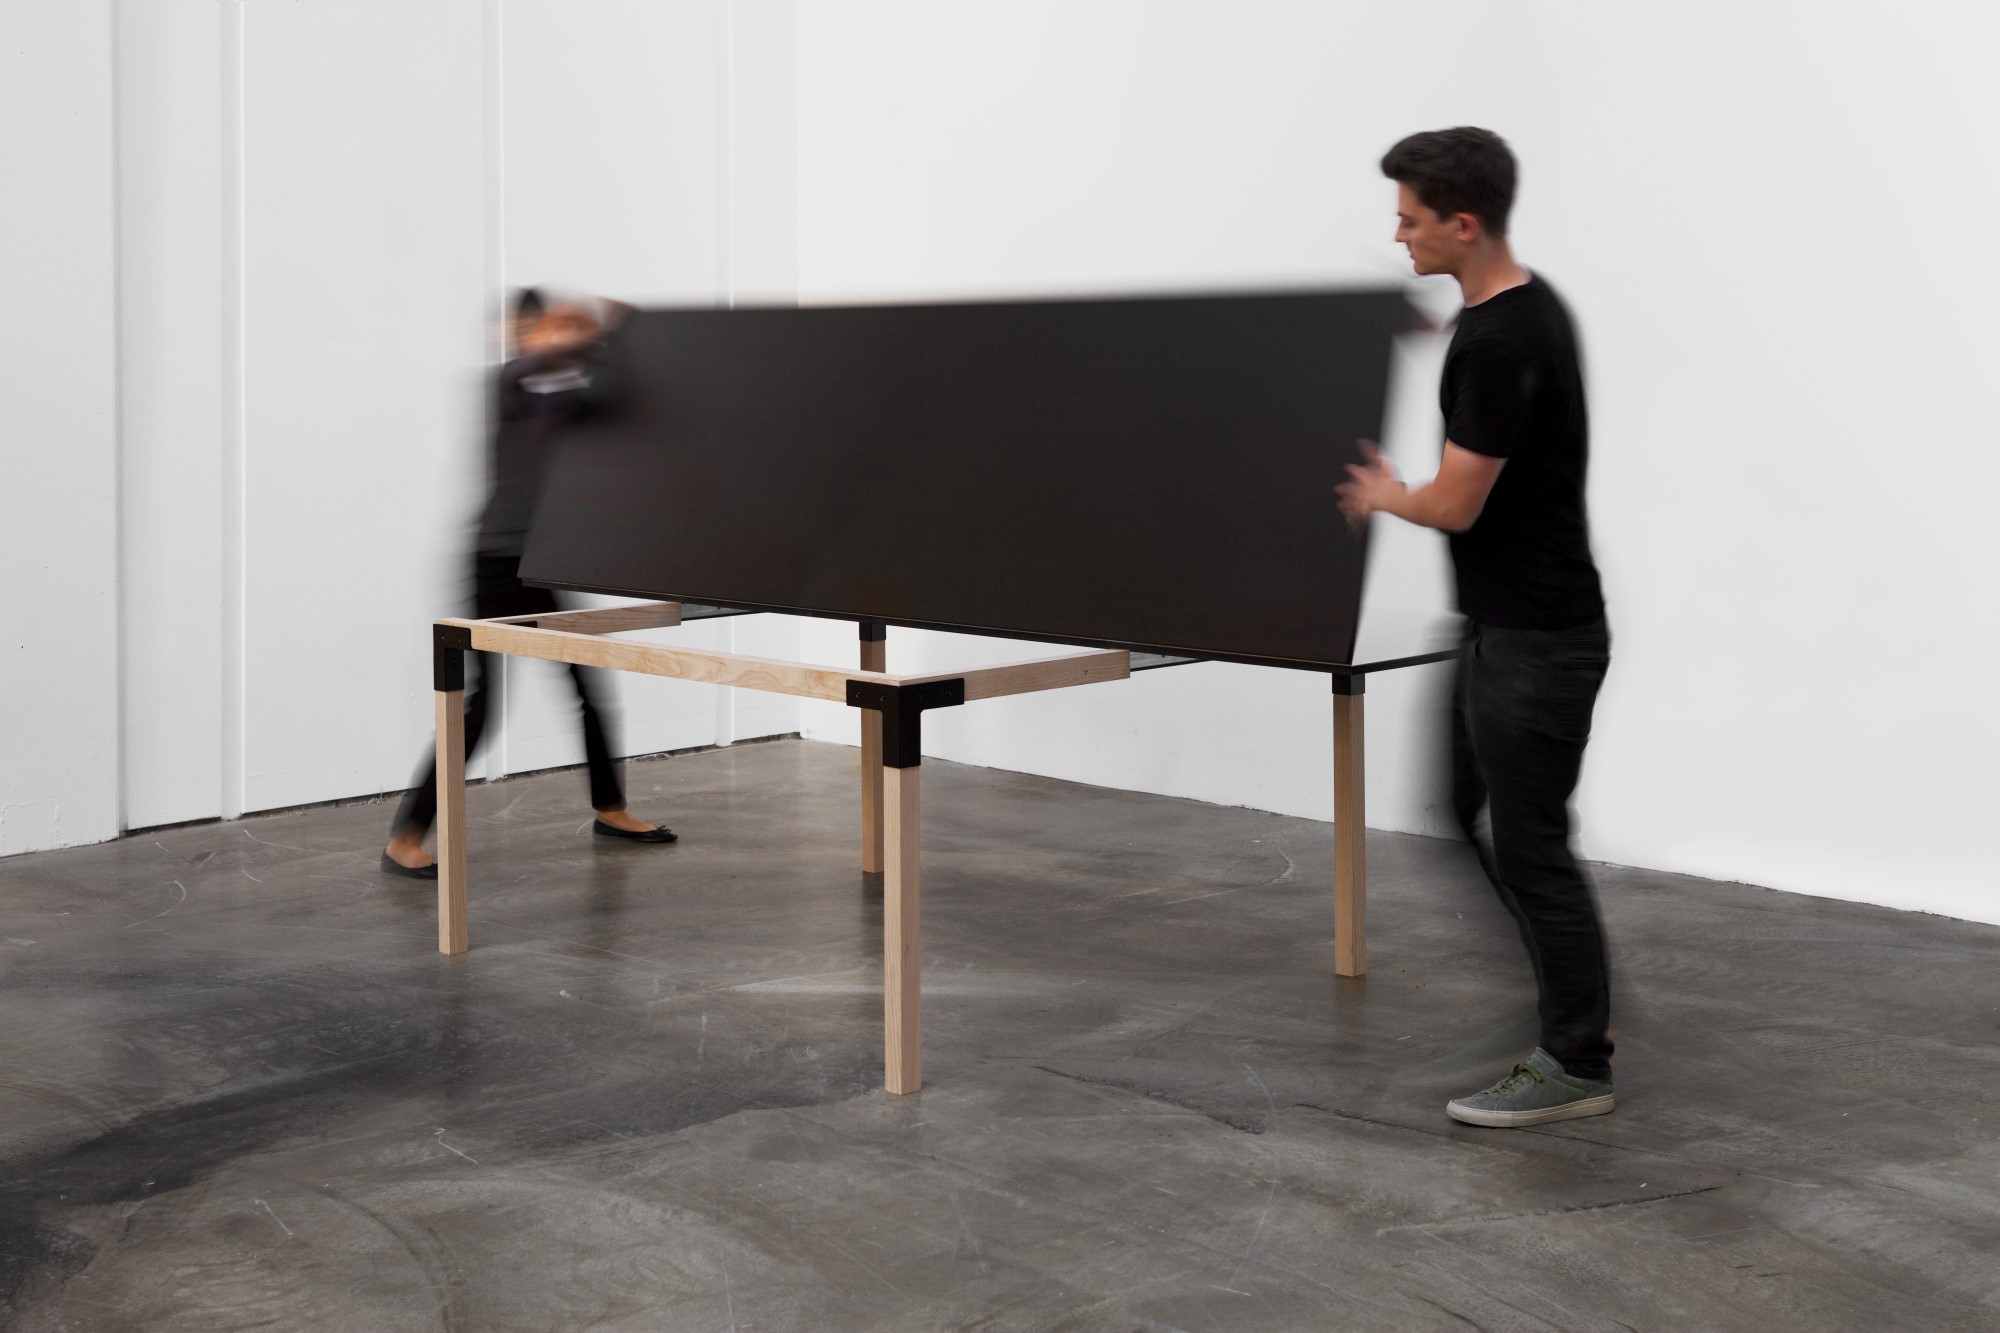 Pull-Pong_MG_0768_20150819_WD